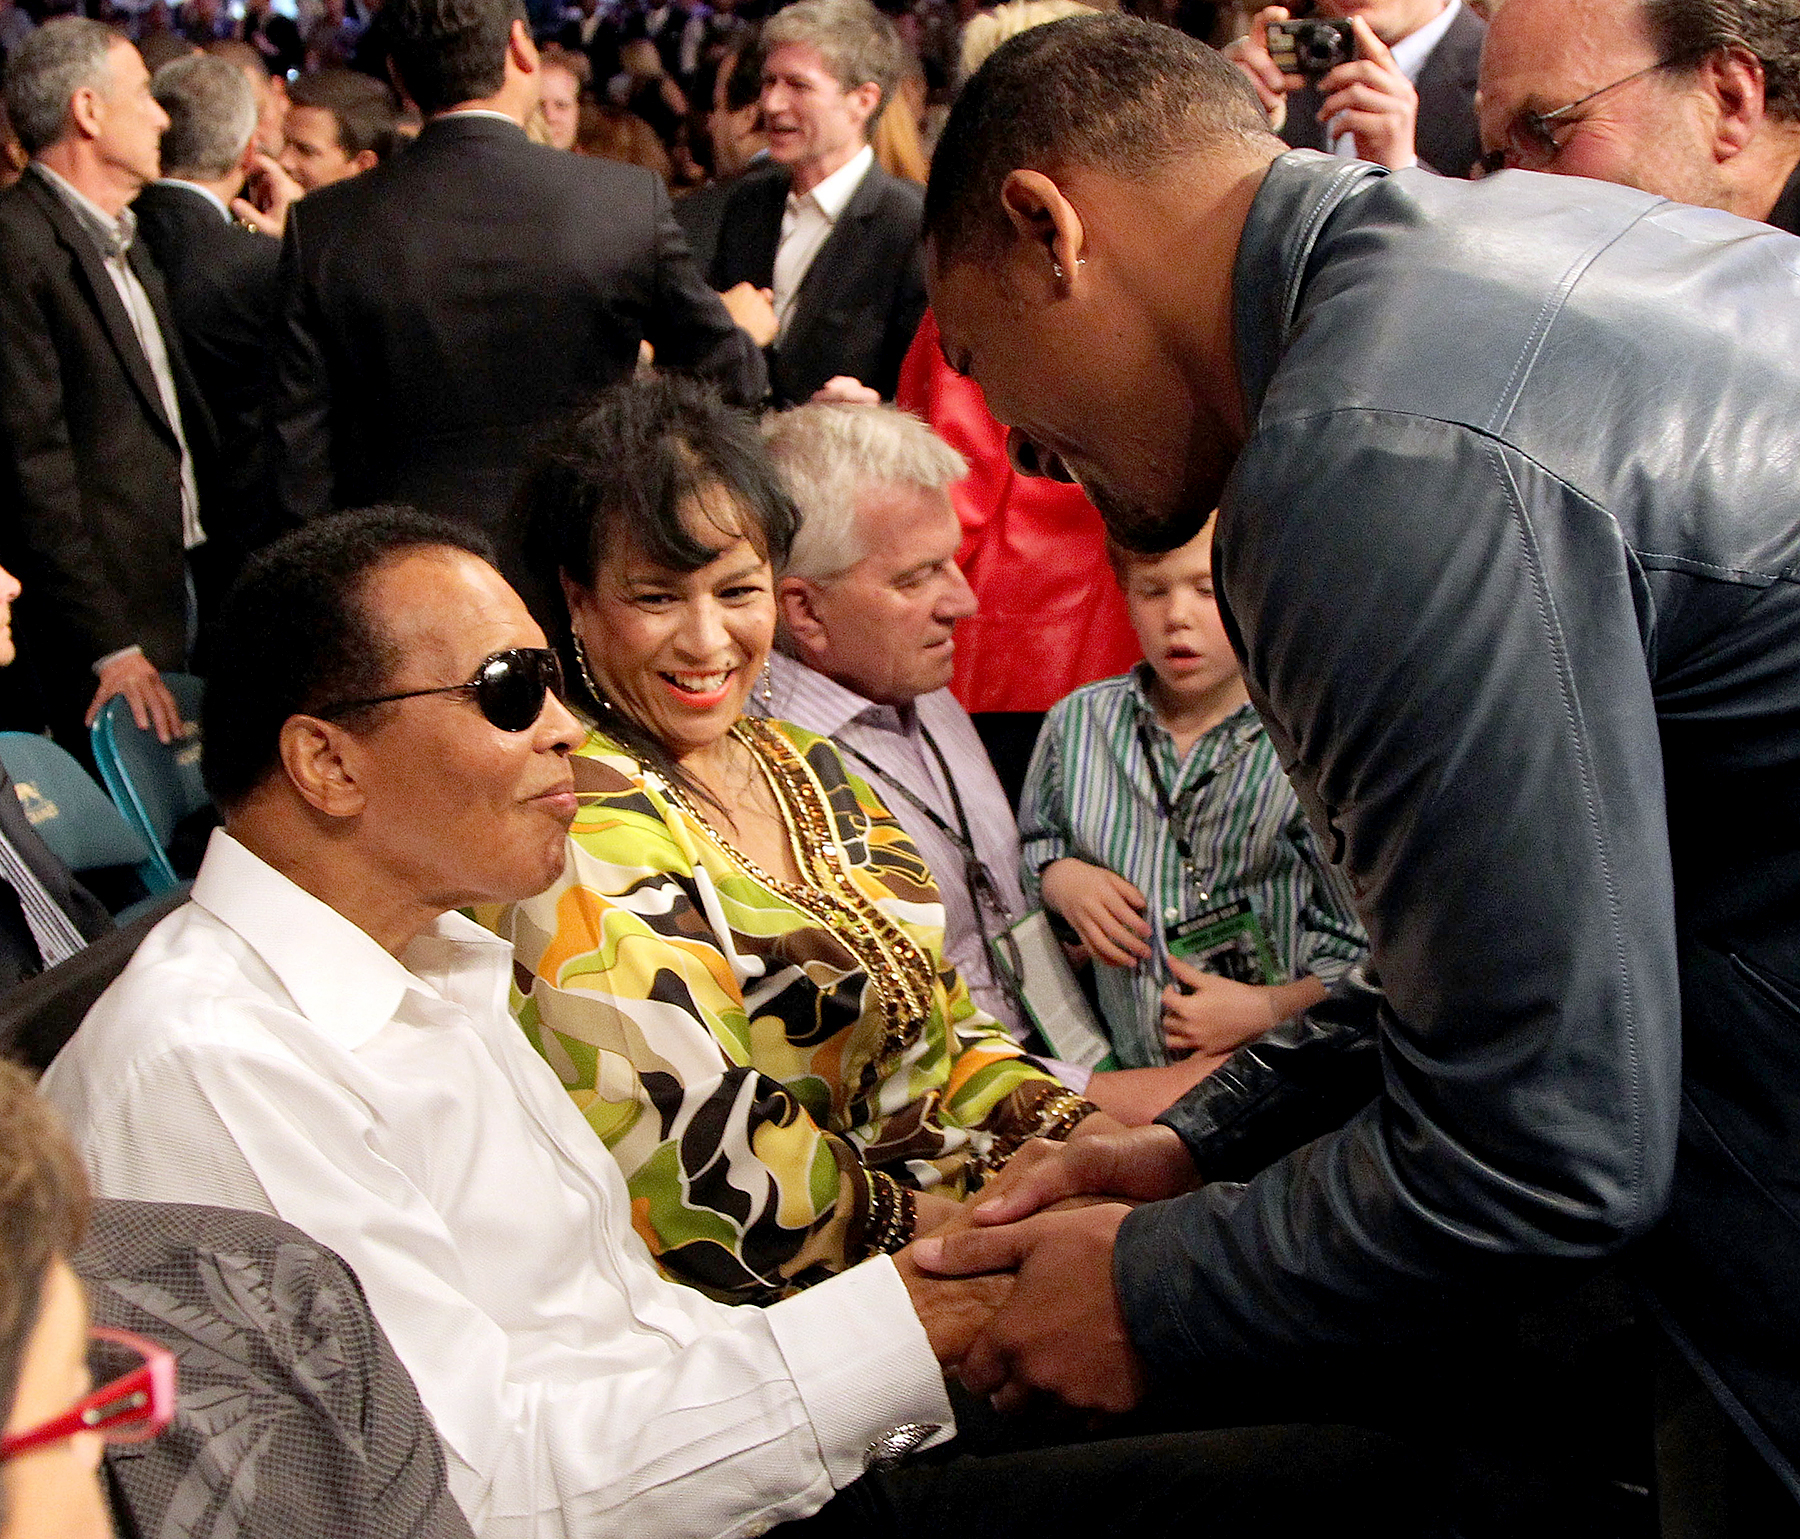 Muhammad Ali talks with actor Will Smith before the start of the Floyd Mayweather Jr. and Shane Mosley welterweight fight at the MGM Grand Garden Arena on May 1, 2010 in Las Vegas, Nevada.